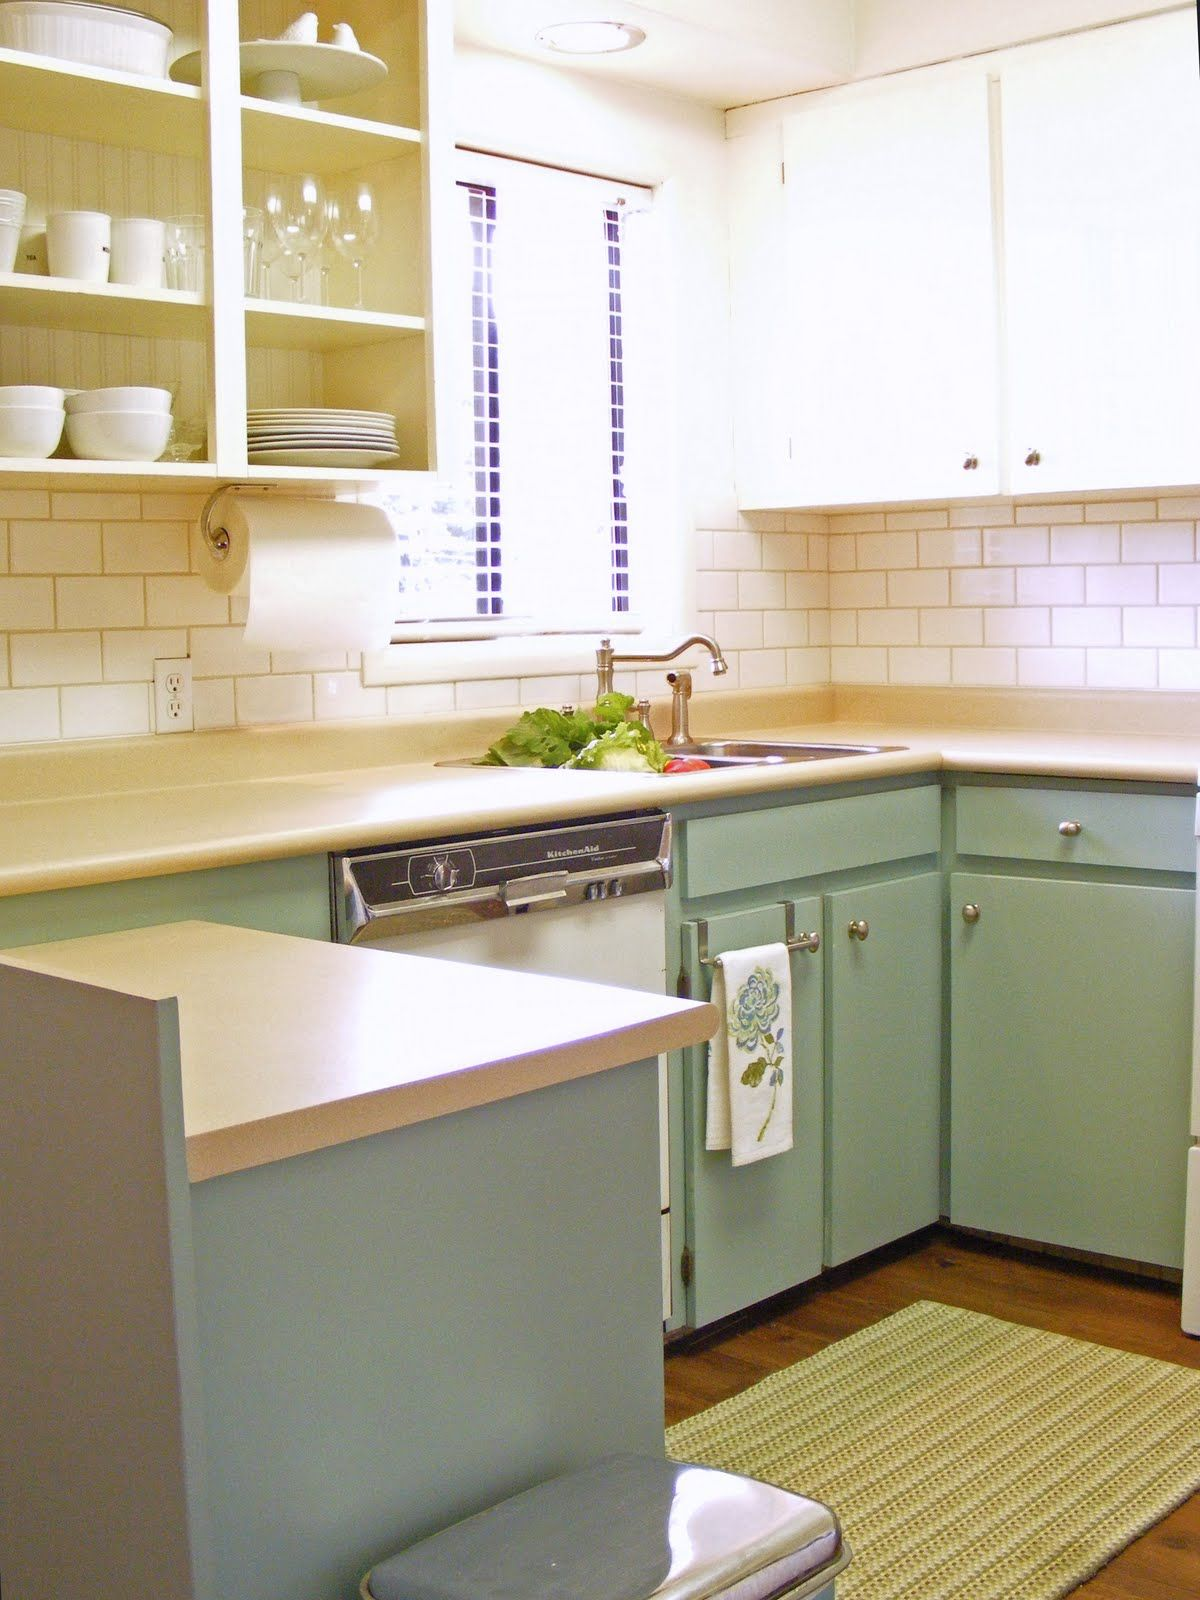 Great idea for a quick and cheap kitchen update! | home sweet home ...